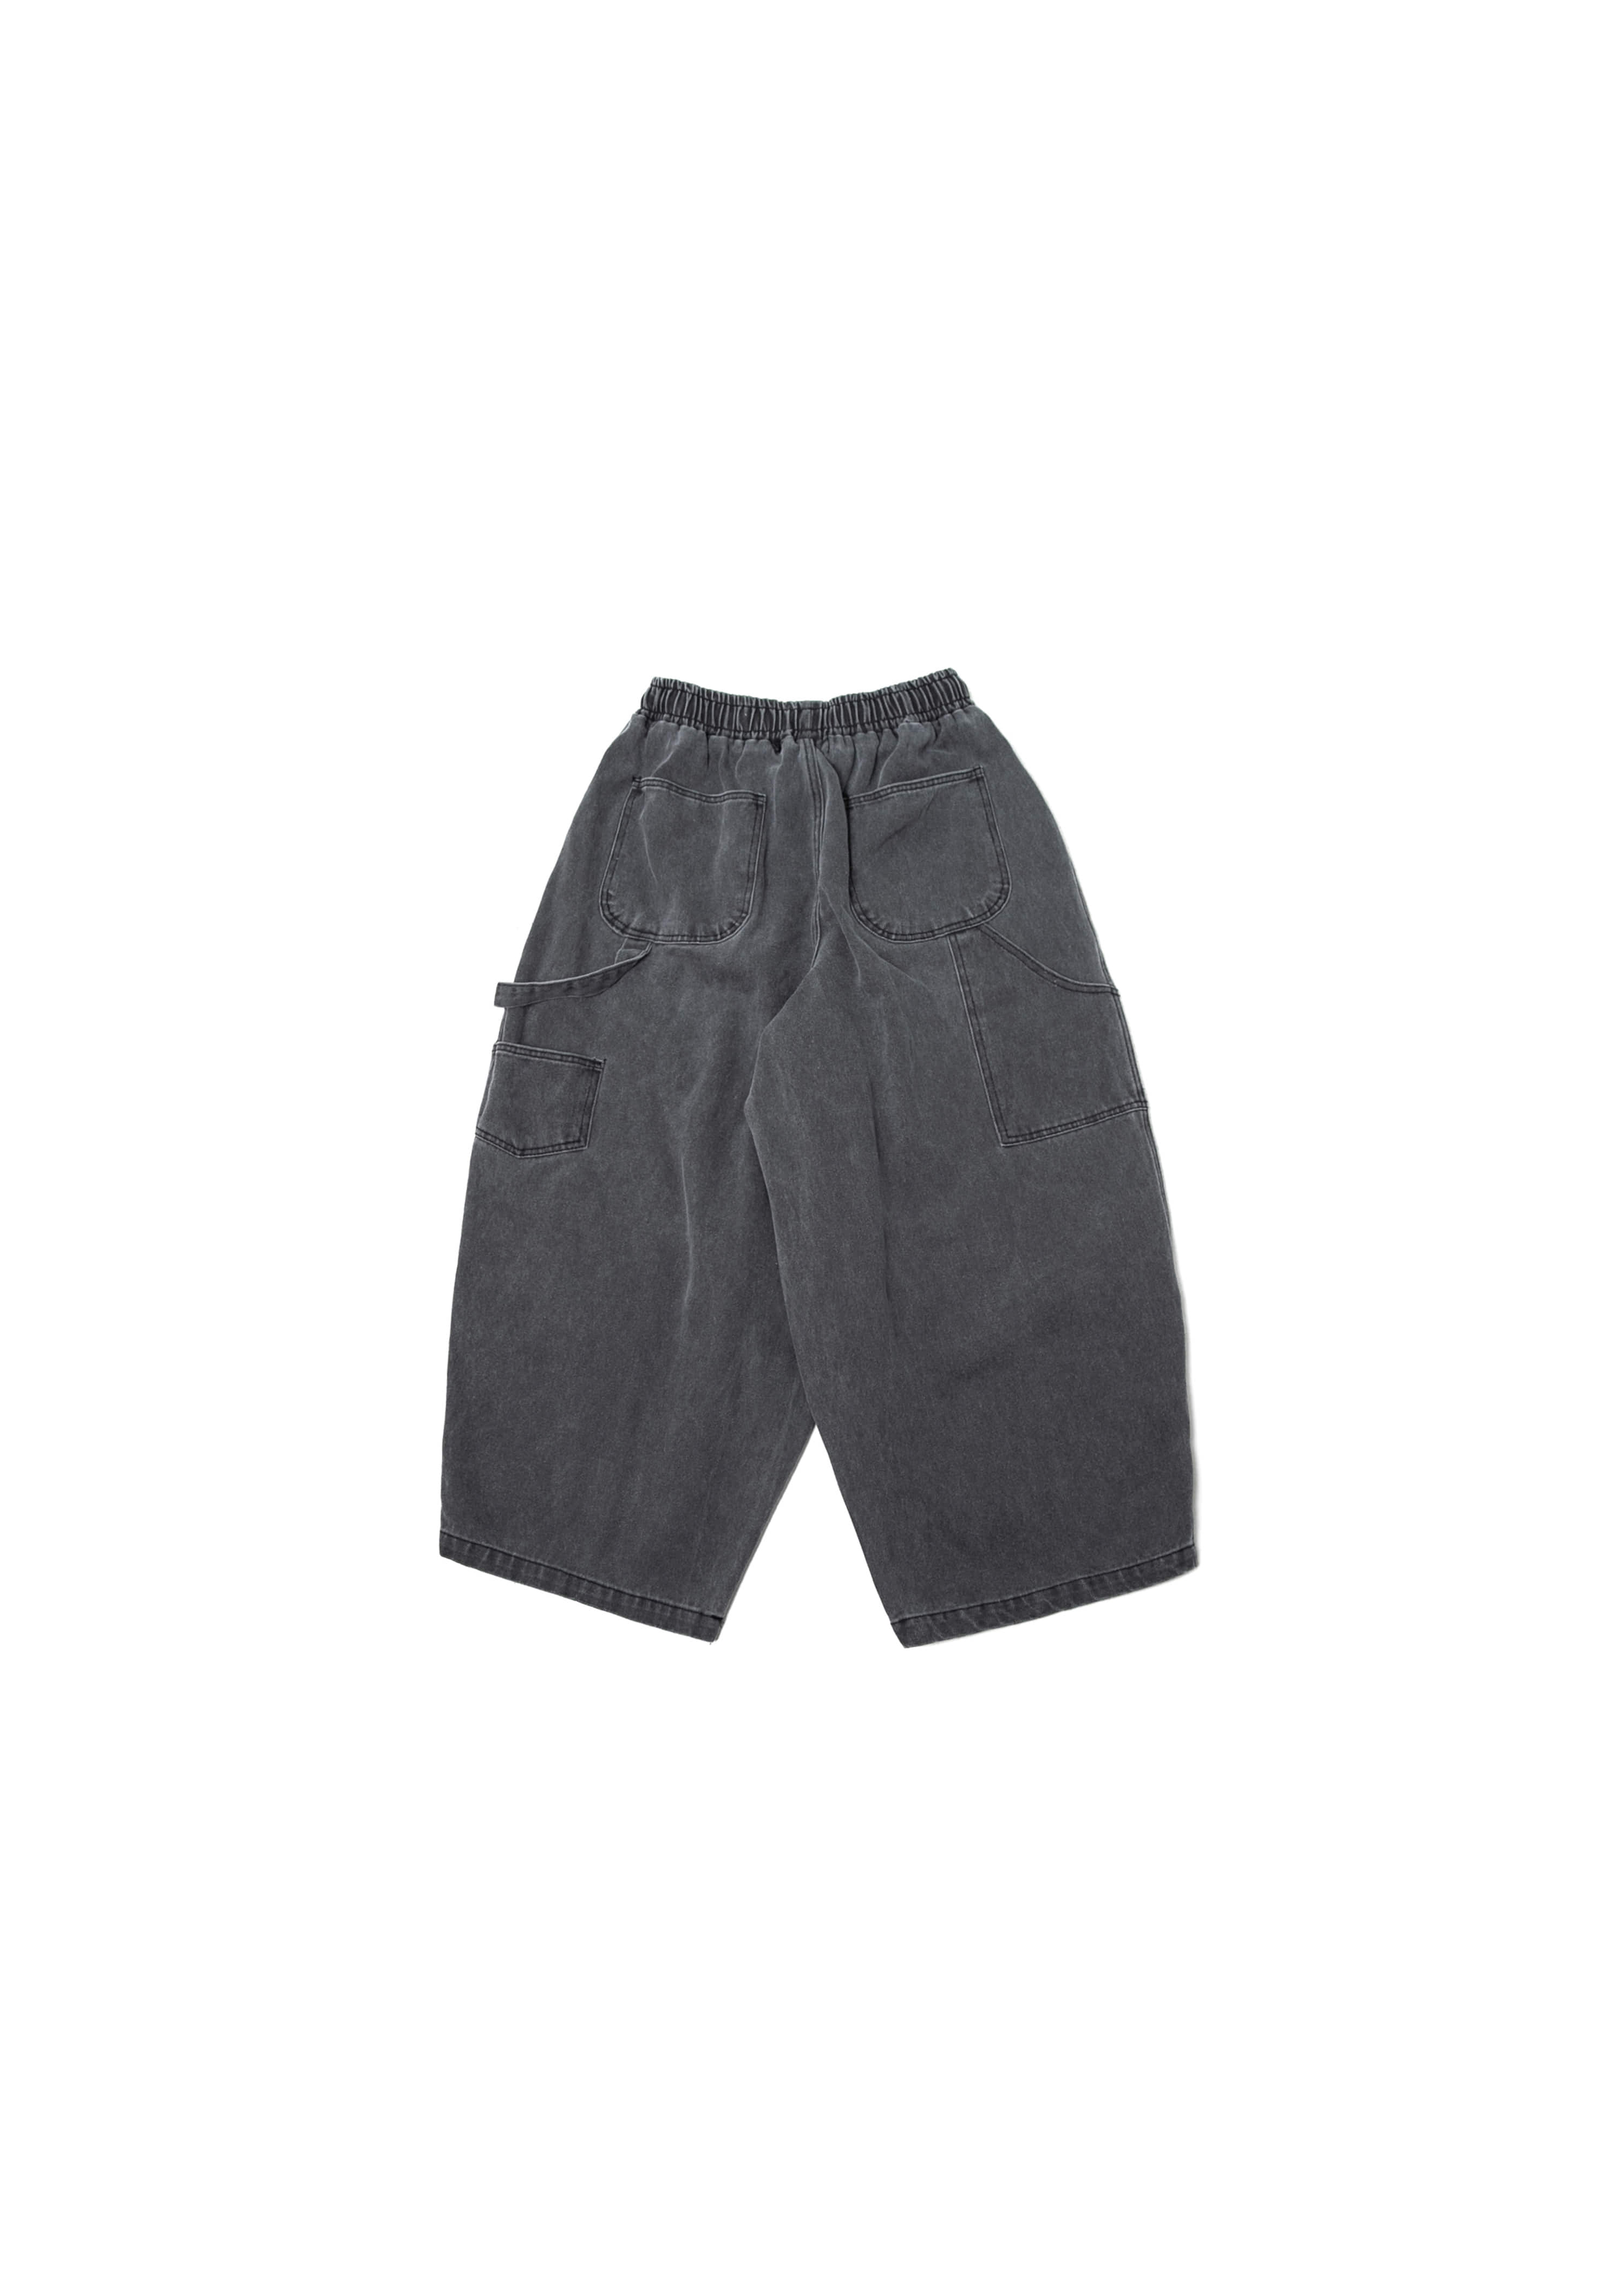 Pigment Fatigue Balloon Pants - Charcoal [ RE ]